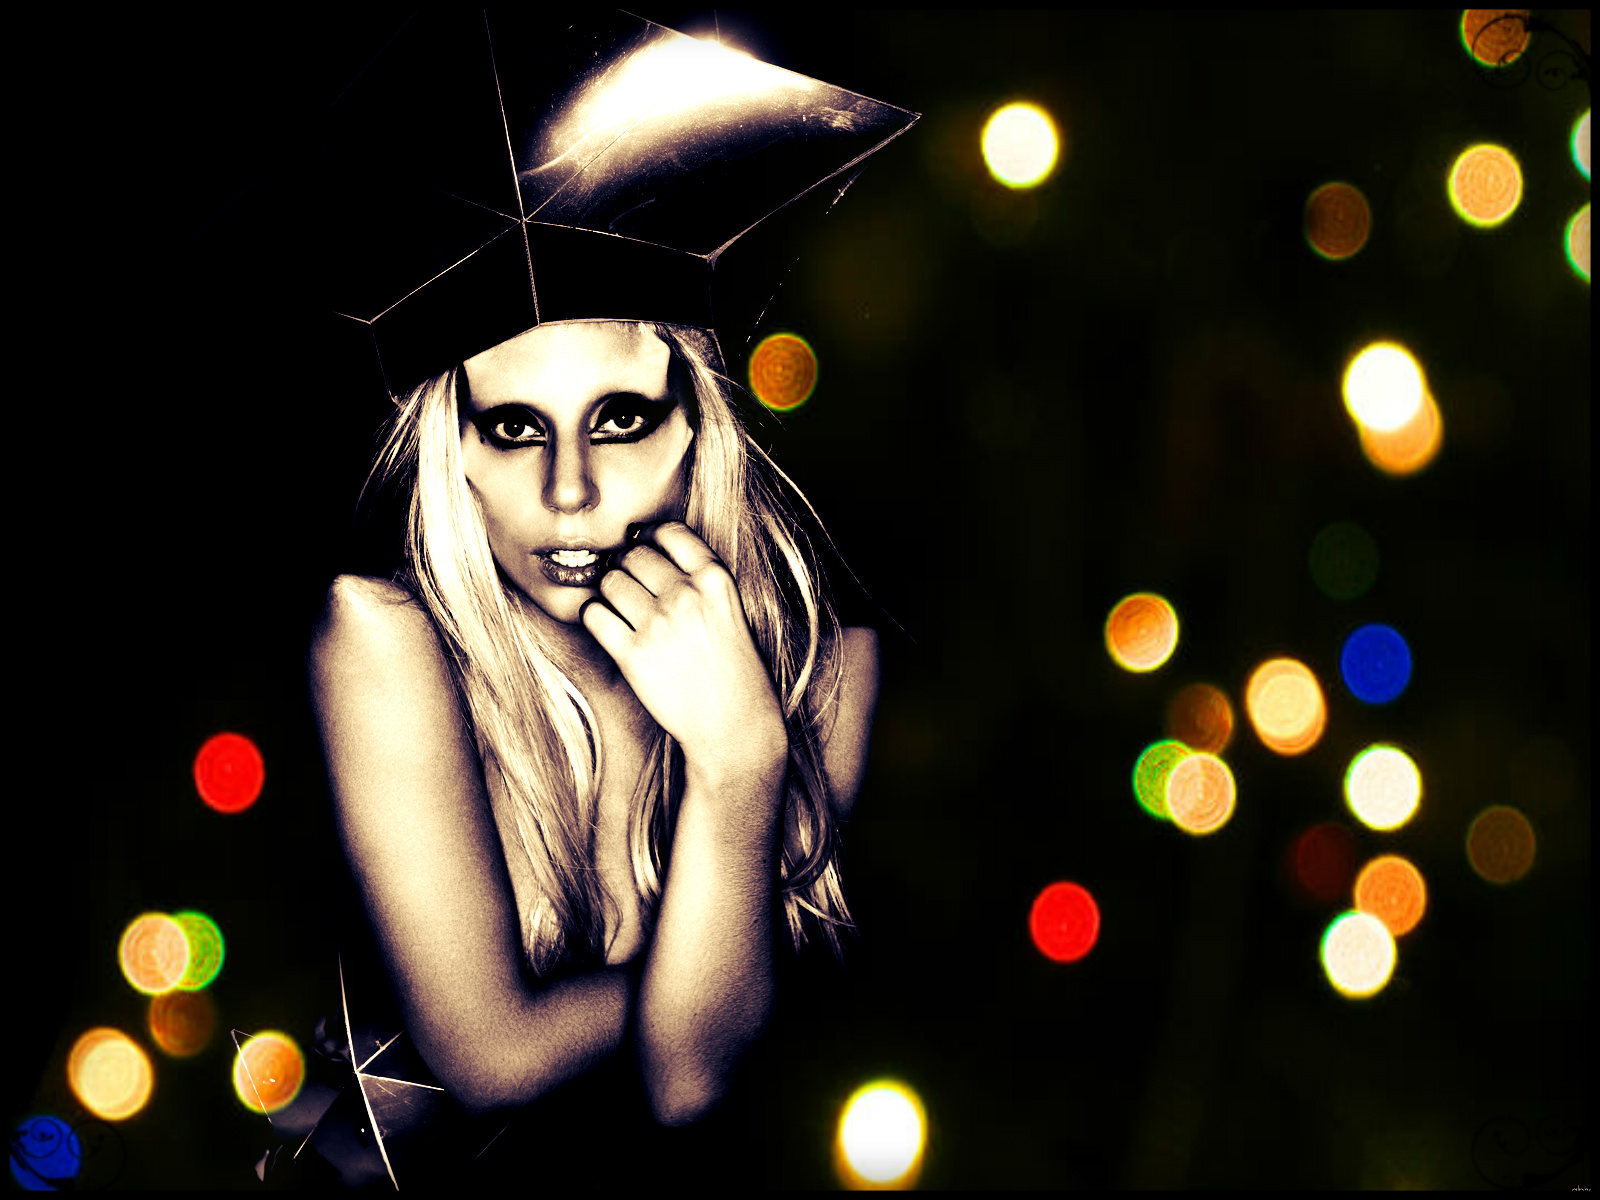 WallpapersWide Lady Gaga Wallpapers High Resolution and Quality Download 1600x1200